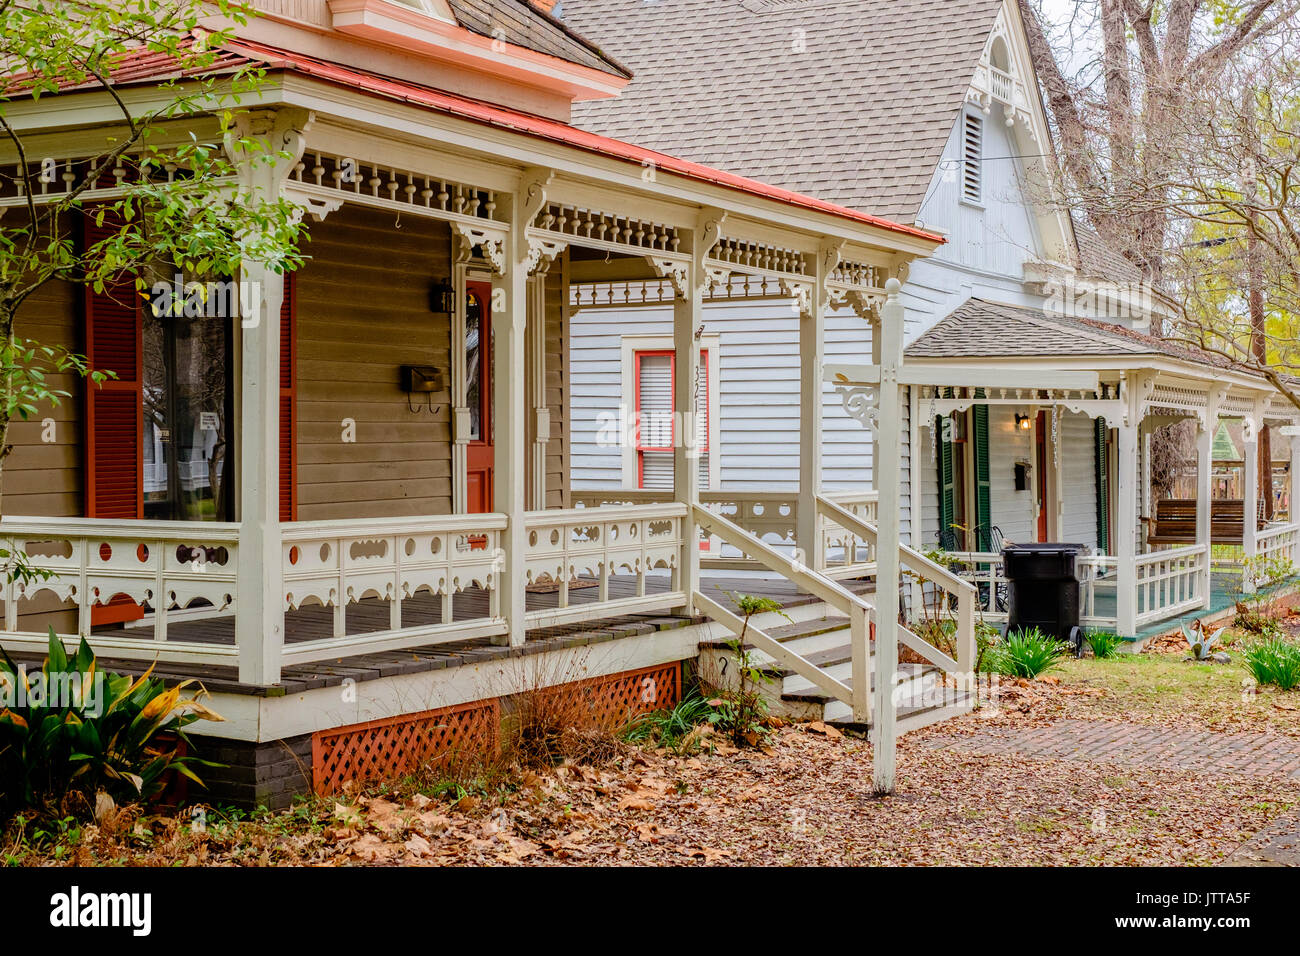 Victorian style homes along a residential street in the fall. - Stock Image